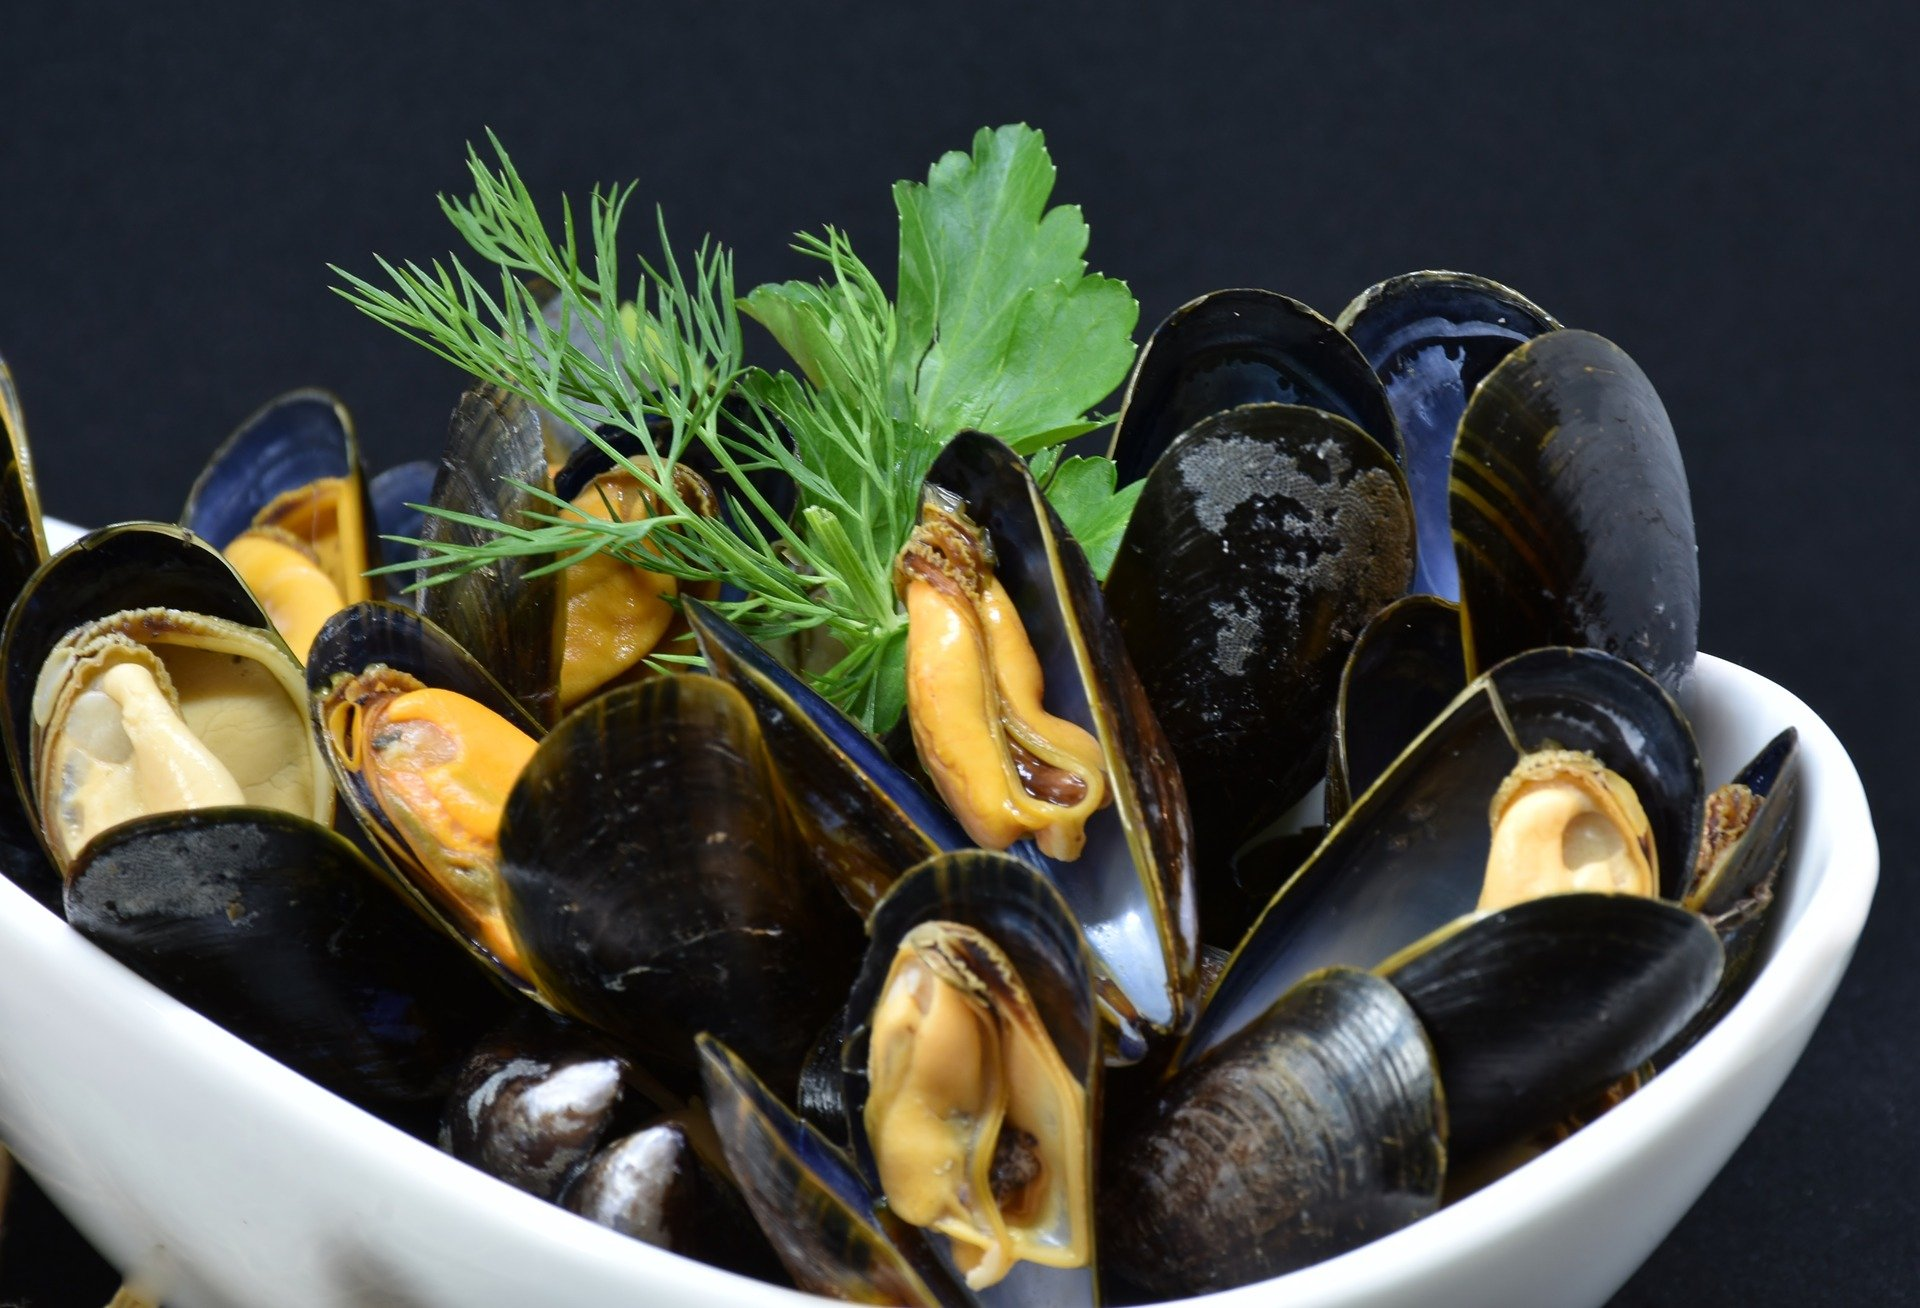 mussels-3148429_1920